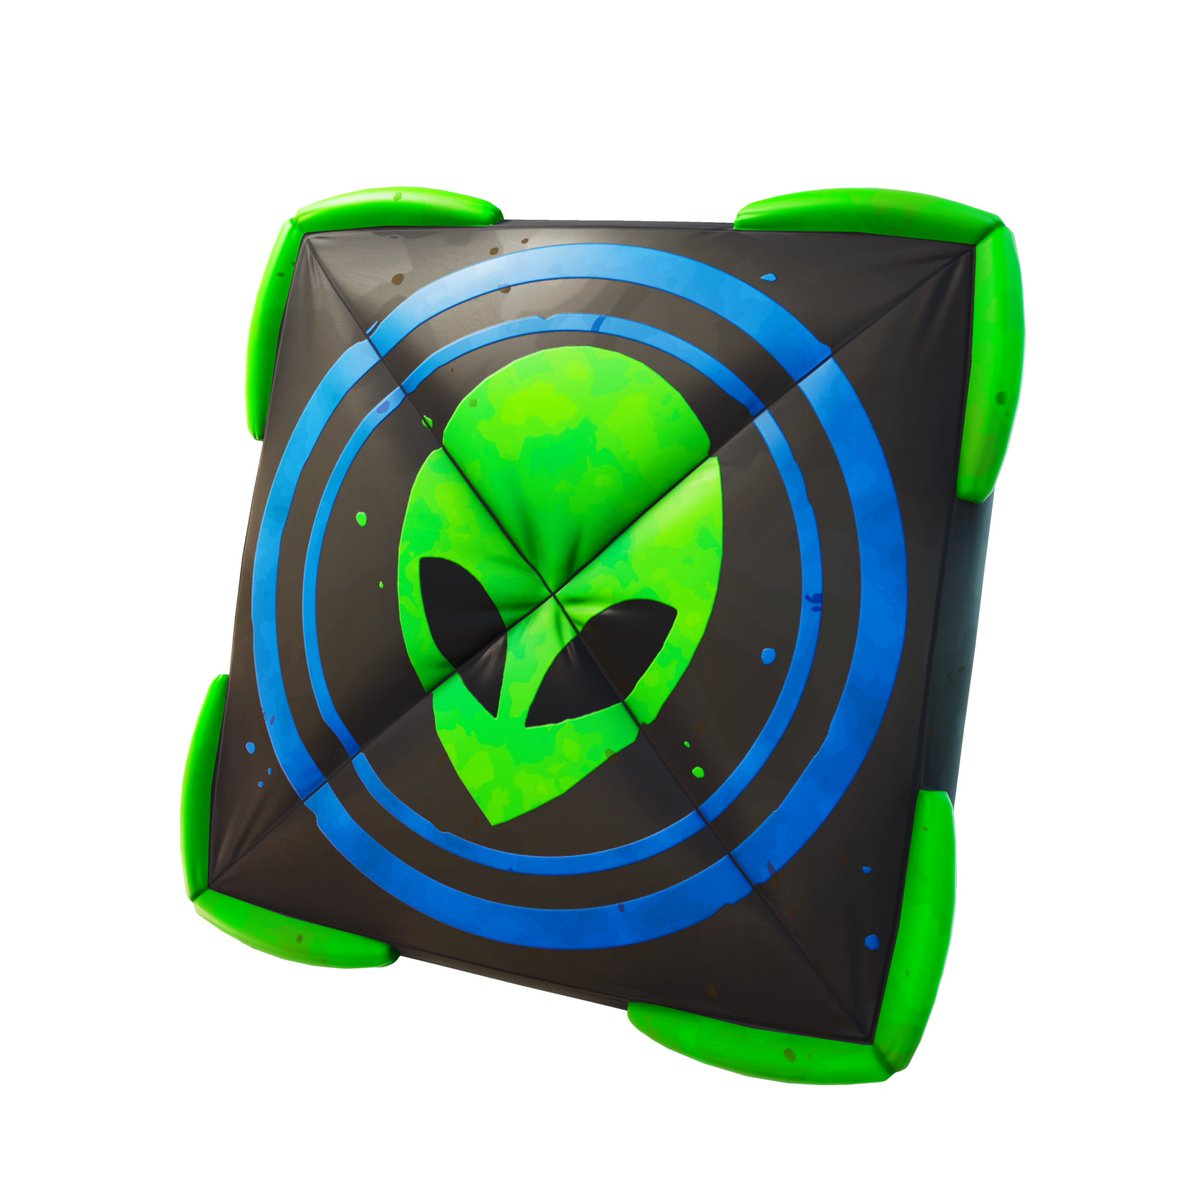 Crash Pads have been modified to suit the season's theme. #Fortnite https://t.co/IGYQGM8xYZ